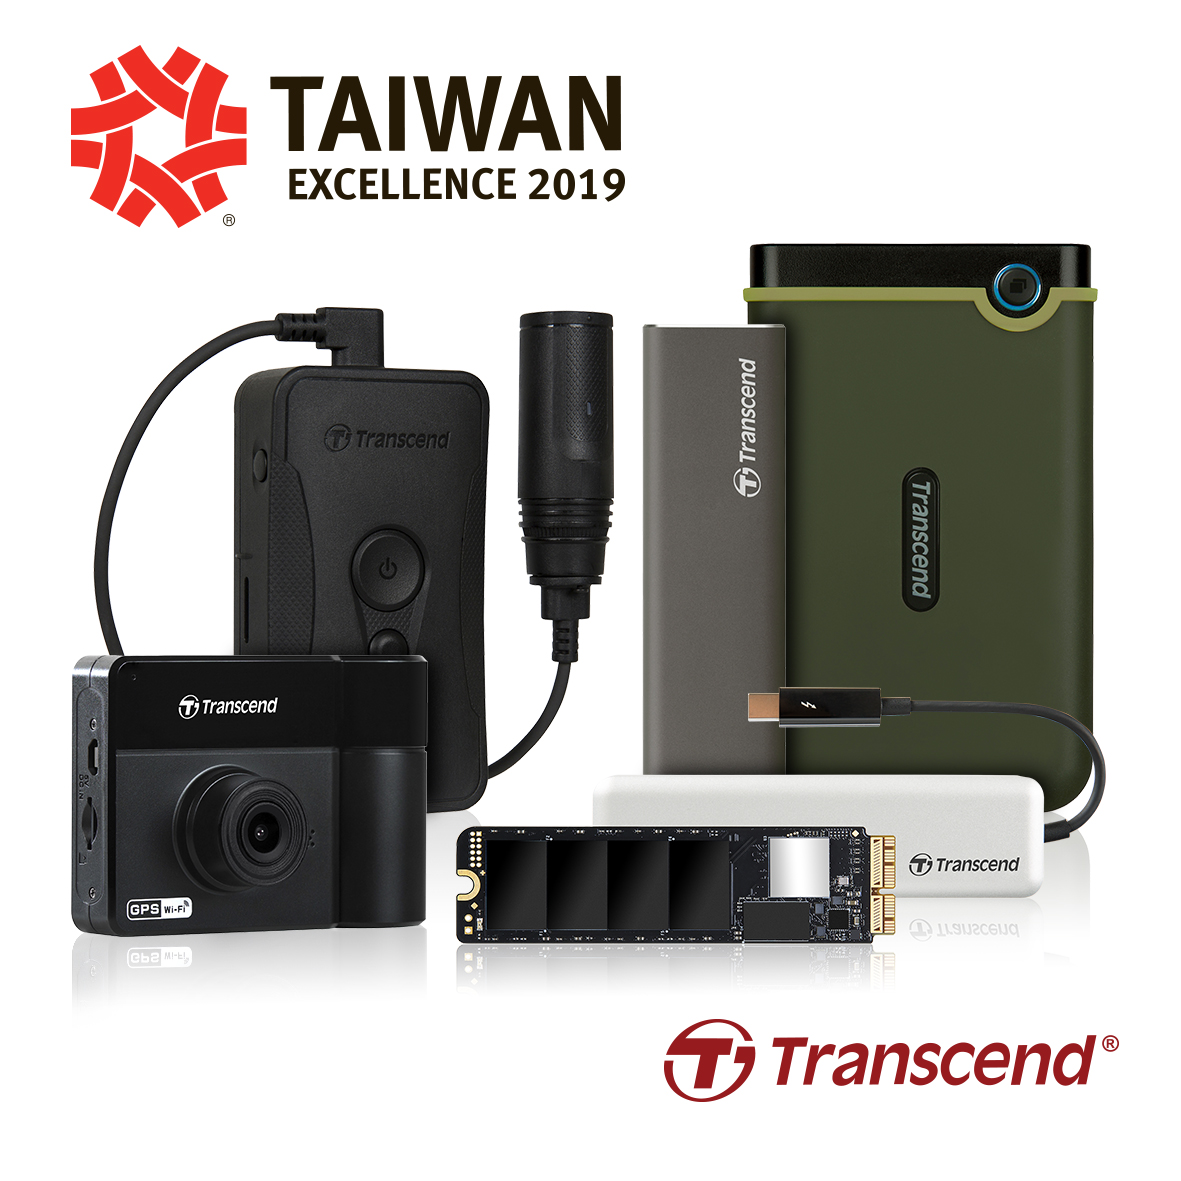 Transcend Wins Five Taiwan Excellence Awards 2019